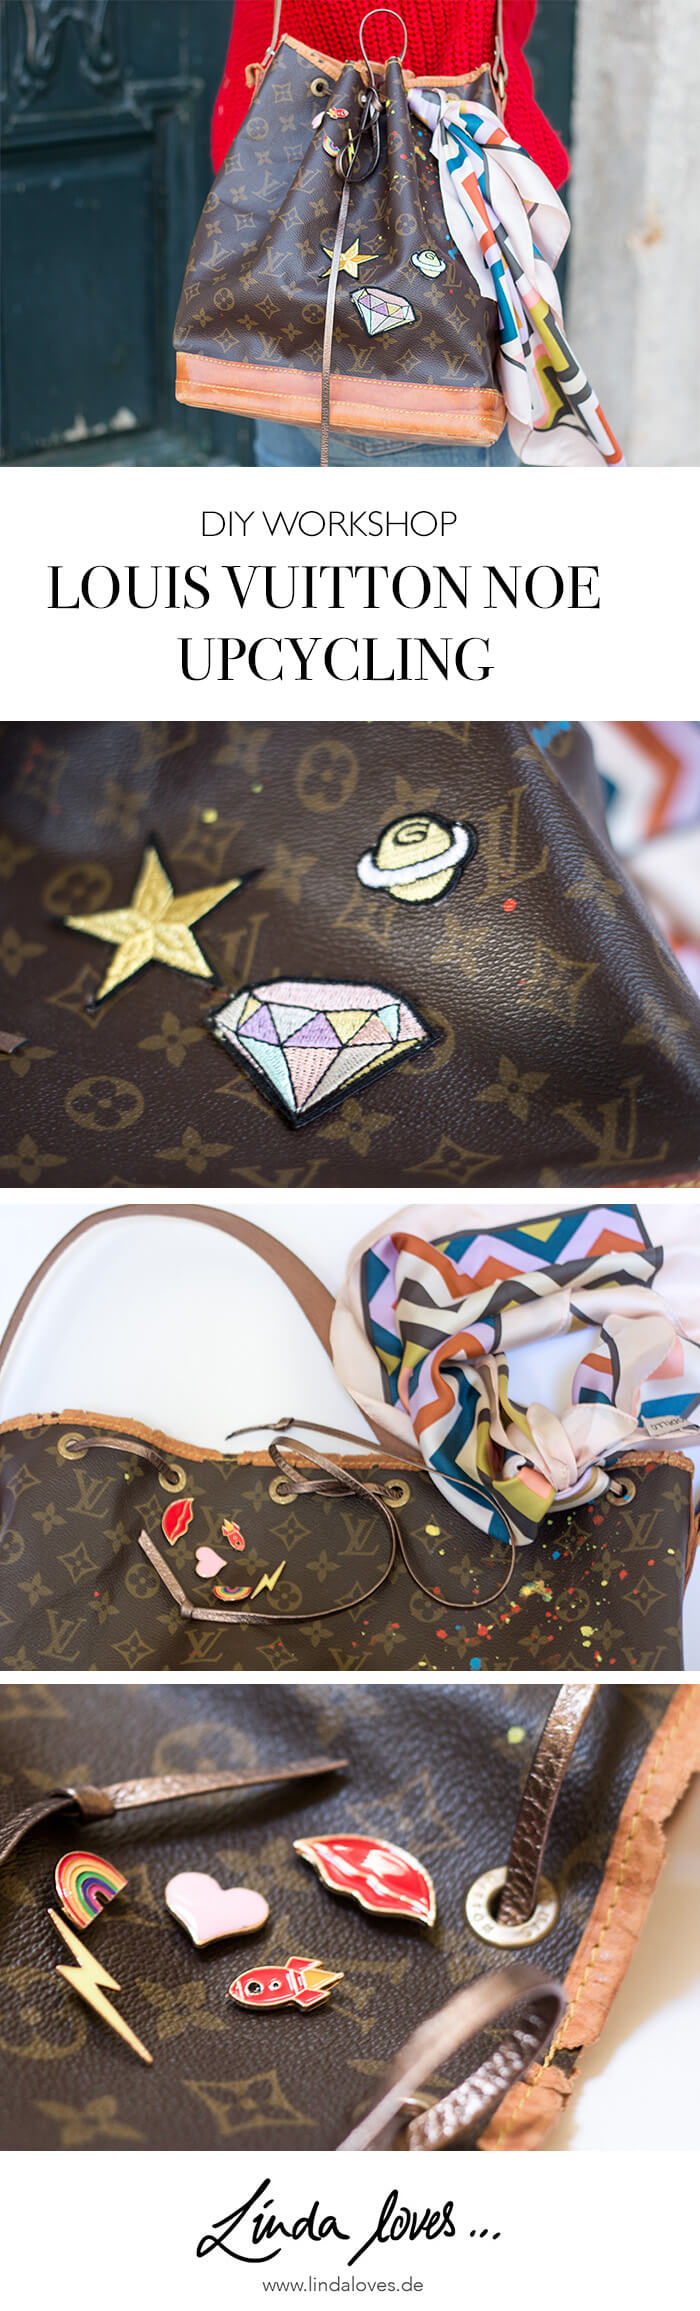 Louis Vuitton Noe Upcycling DIY Workshop mit Linda loves - DIY Blog aus Berlin